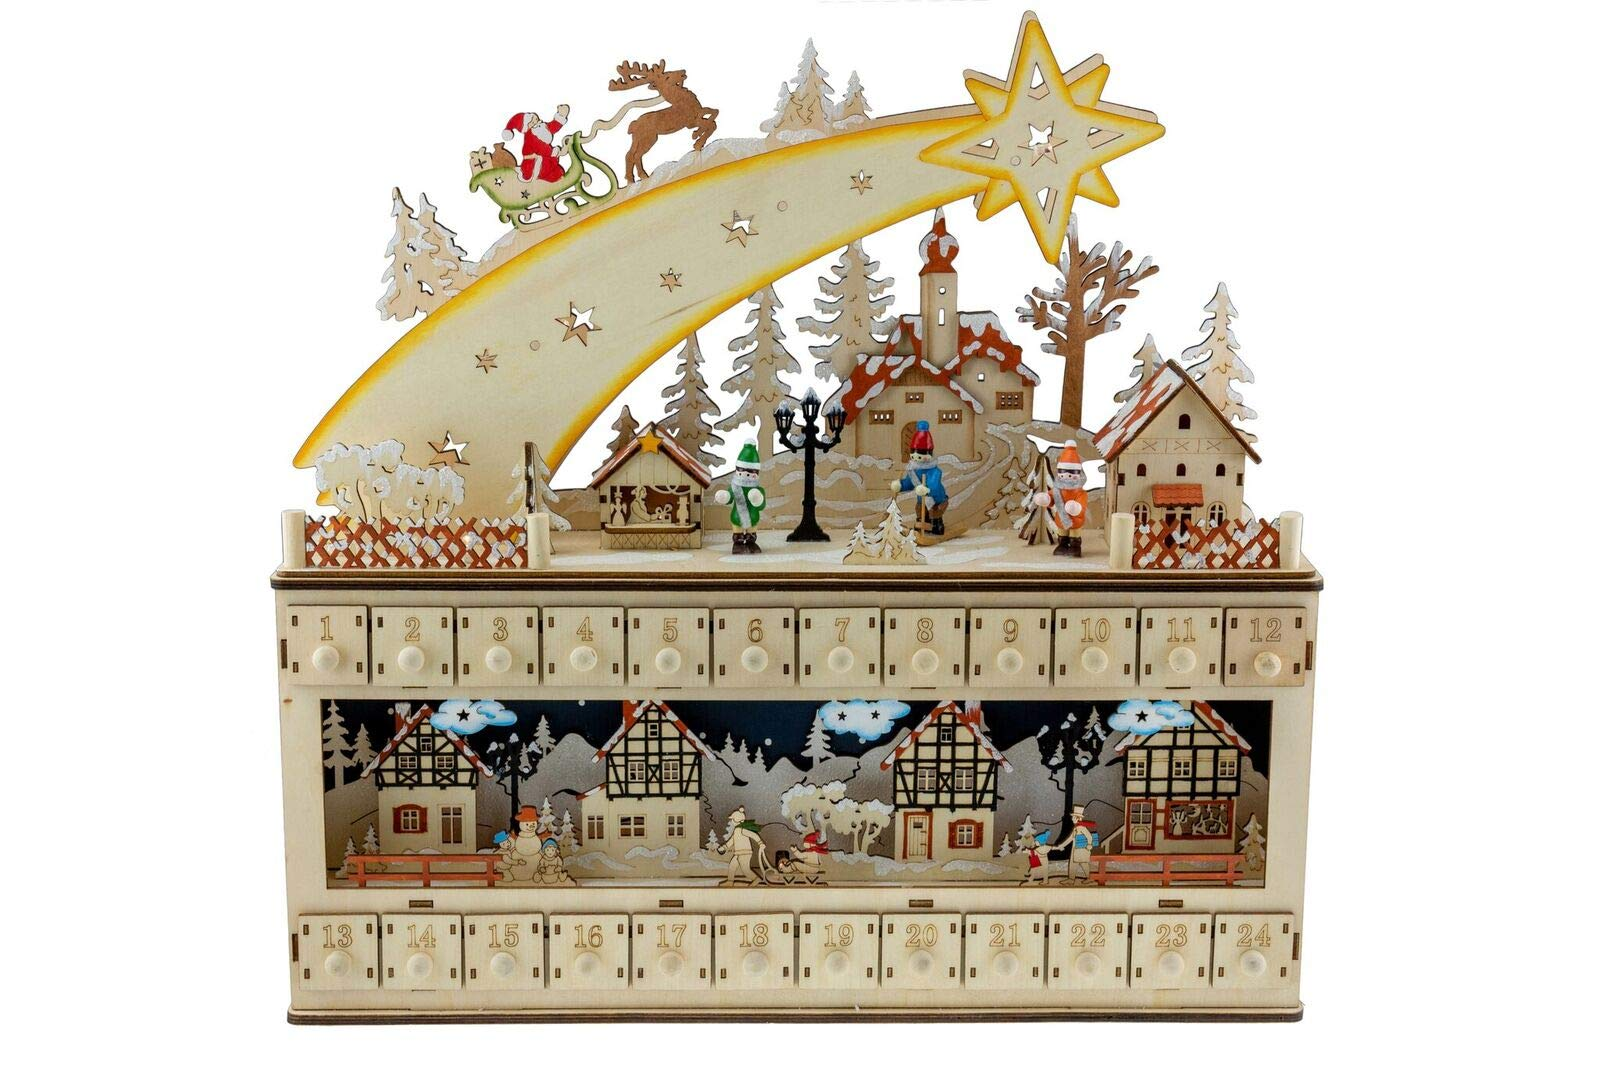 Clever Creations Shooting Star Snowy Village 24 Day Advent Calendar Premium Christmas Décor | Painted Characters | 100% Wood Construction | Cute Holiday Decoration | Measures 17'' x 4'' x 17.25''